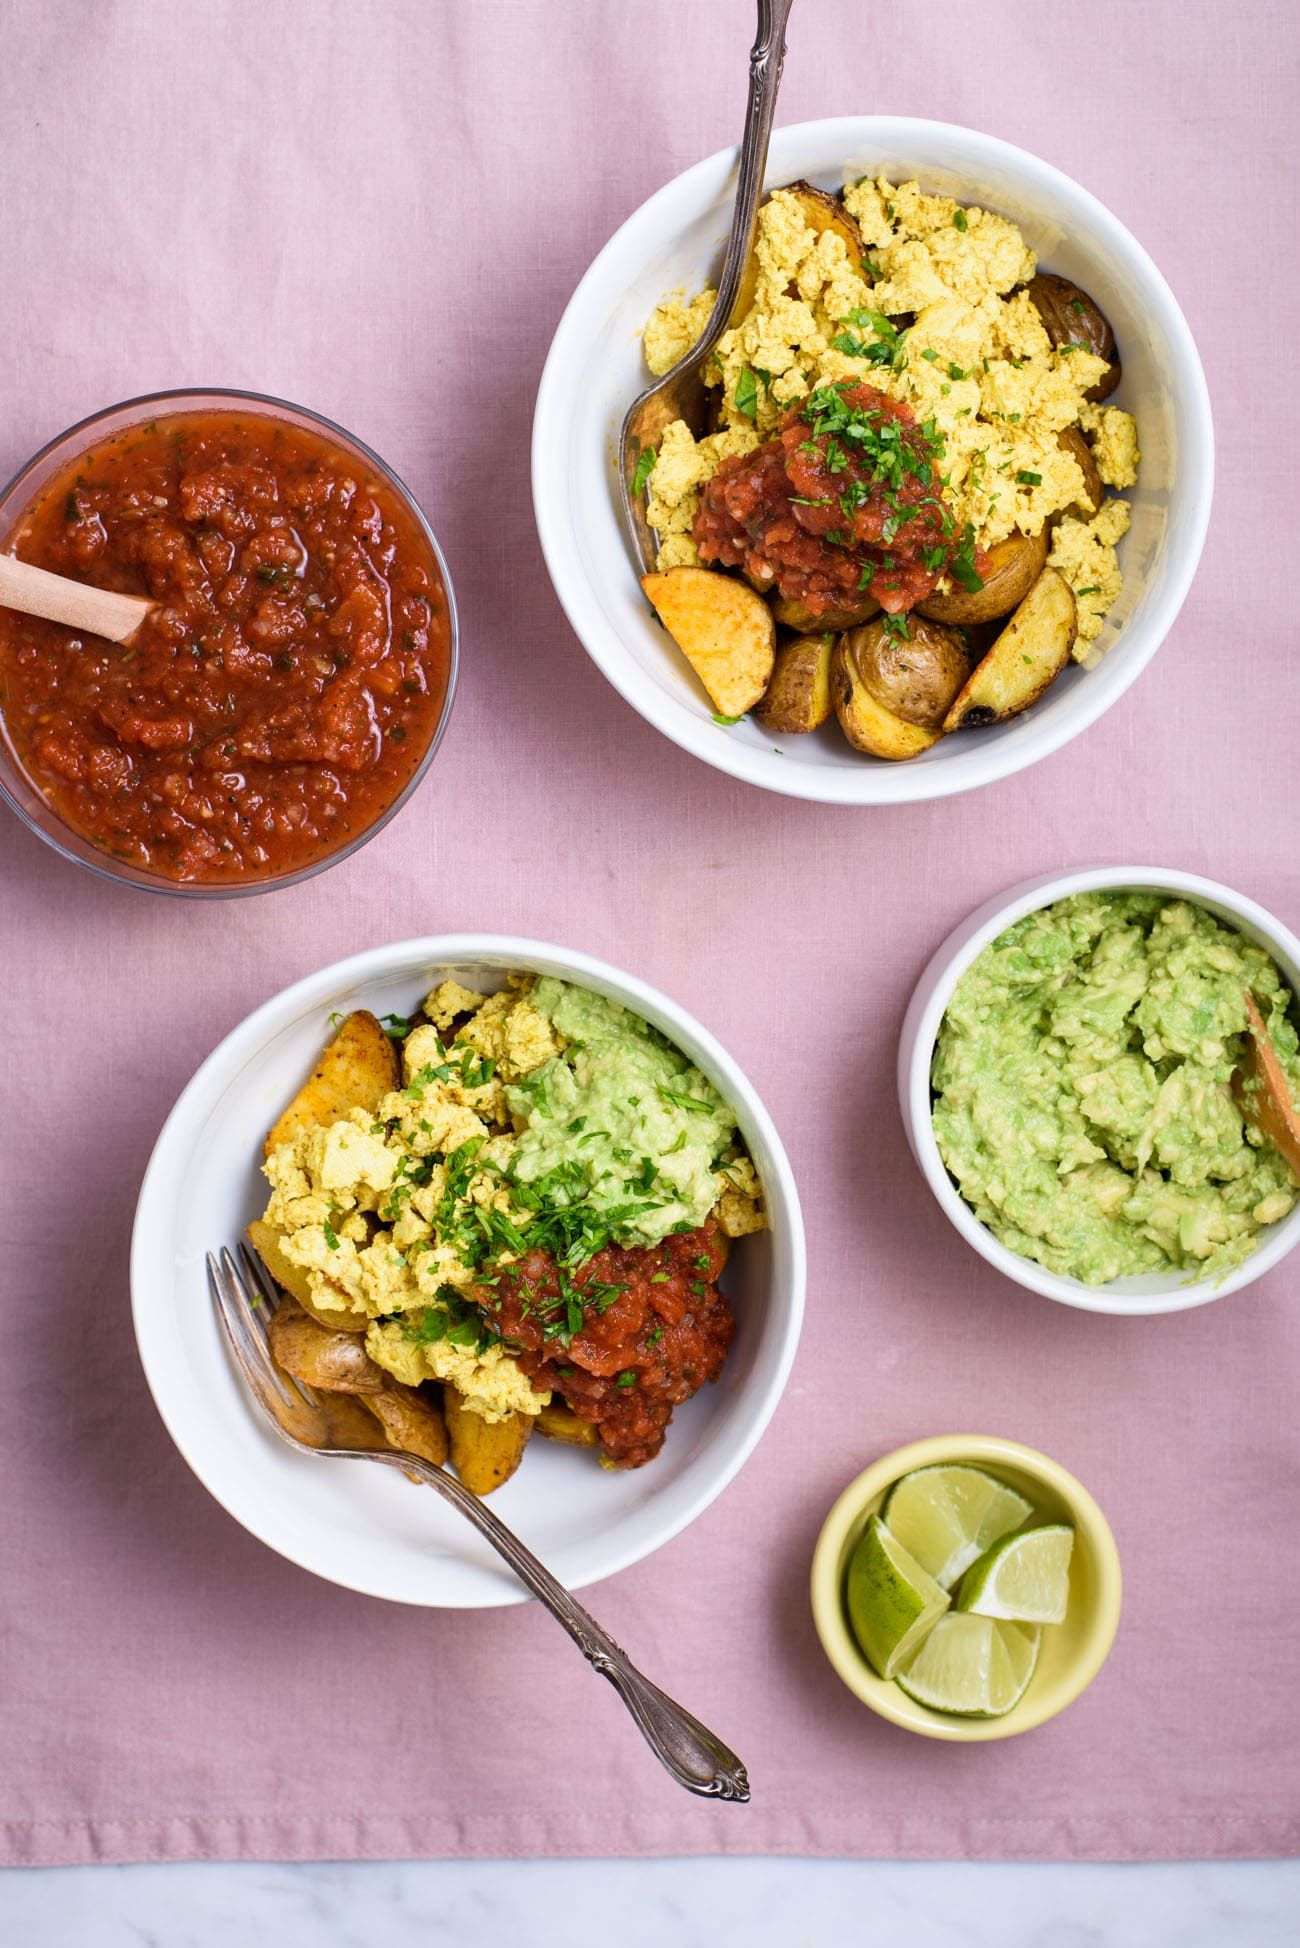 Looking For A Savory Vegan Breakfast Recipe Try This Vegan Breakfast Bowl With Mexican Sc Breakfast Bowls Vegan Brunch Recipes Quick Healthy Breakfast Recipes